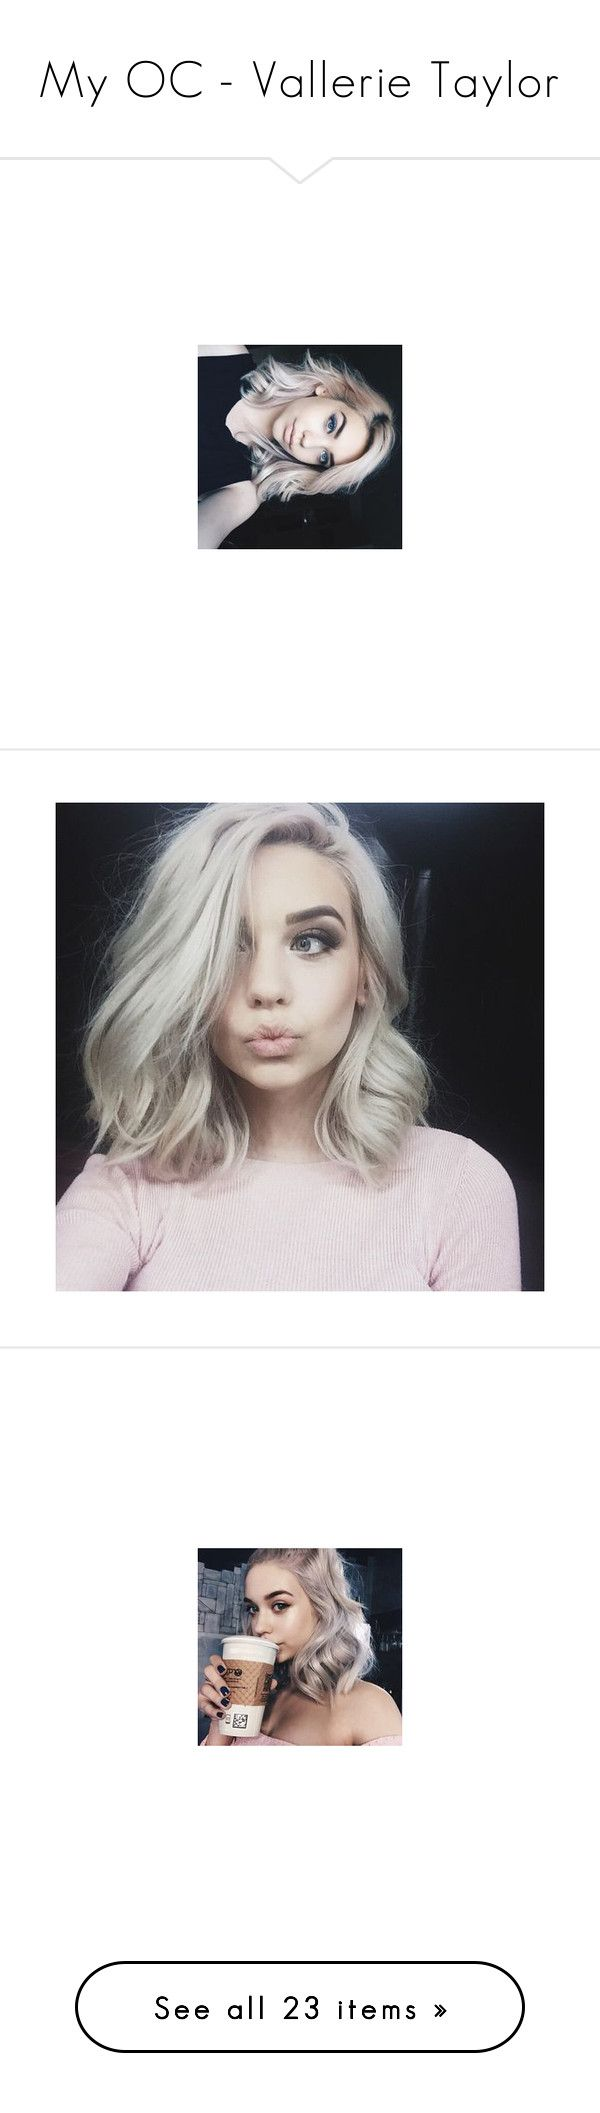 """""""My OC - Vallerie Taylor"""" by makhinegankaller14 ❤ liked on Polyvore featuring amanda steele, hair, people, pics, pictures, accessories, body art, electronics, filler and home stuff"""